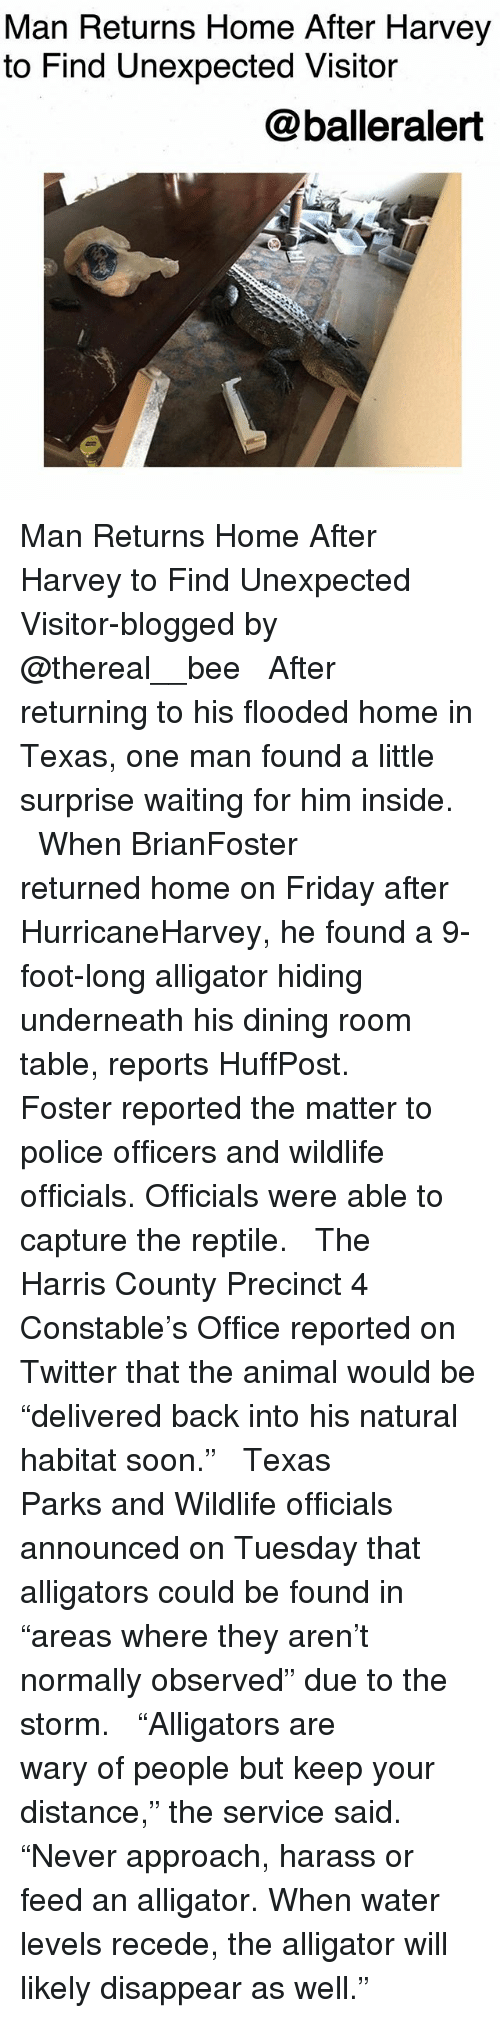 """homed: Man Returns Home After Harvey  to Find Unexpected Visitor  @balleralert Man Returns Home After Harvey to Find Unexpected Visitor-blogged by @thereal__bee ⠀⠀⠀⠀⠀⠀⠀⠀⠀ ⠀⠀ After returning to his flooded home in Texas, one man found a little surprise waiting for him inside. ⠀⠀⠀⠀⠀⠀⠀⠀⠀ ⠀⠀ When BrianFoster returned home on Friday after HurricaneHarvey, he found a 9-foot-long alligator hiding underneath his dining room table, reports HuffPost. ⠀⠀⠀⠀⠀⠀⠀⠀⠀ ⠀⠀ Foster reported the matter to police officers and wildlife officials. Officials were able to capture the reptile. ⠀⠀⠀⠀⠀⠀⠀⠀⠀ ⠀⠀ The Harris County Precinct 4 Constable's Office reported on Twitter that the animal would be """"delivered back into his natural habitat soon."""" ⠀⠀⠀⠀⠀⠀⠀⠀⠀ ⠀⠀ Texas Parks and Wildlife officials announced on Tuesday that alligators could be found in """"areas where they aren't normally observed"""" due to the storm. ⠀⠀⠀⠀⠀⠀⠀⠀⠀ ⠀⠀ """"Alligators are wary of people but keep your distance,"""" the service said. """"Never approach, harass or feed an alligator. When water levels recede, the alligator will likely disappear as well."""""""